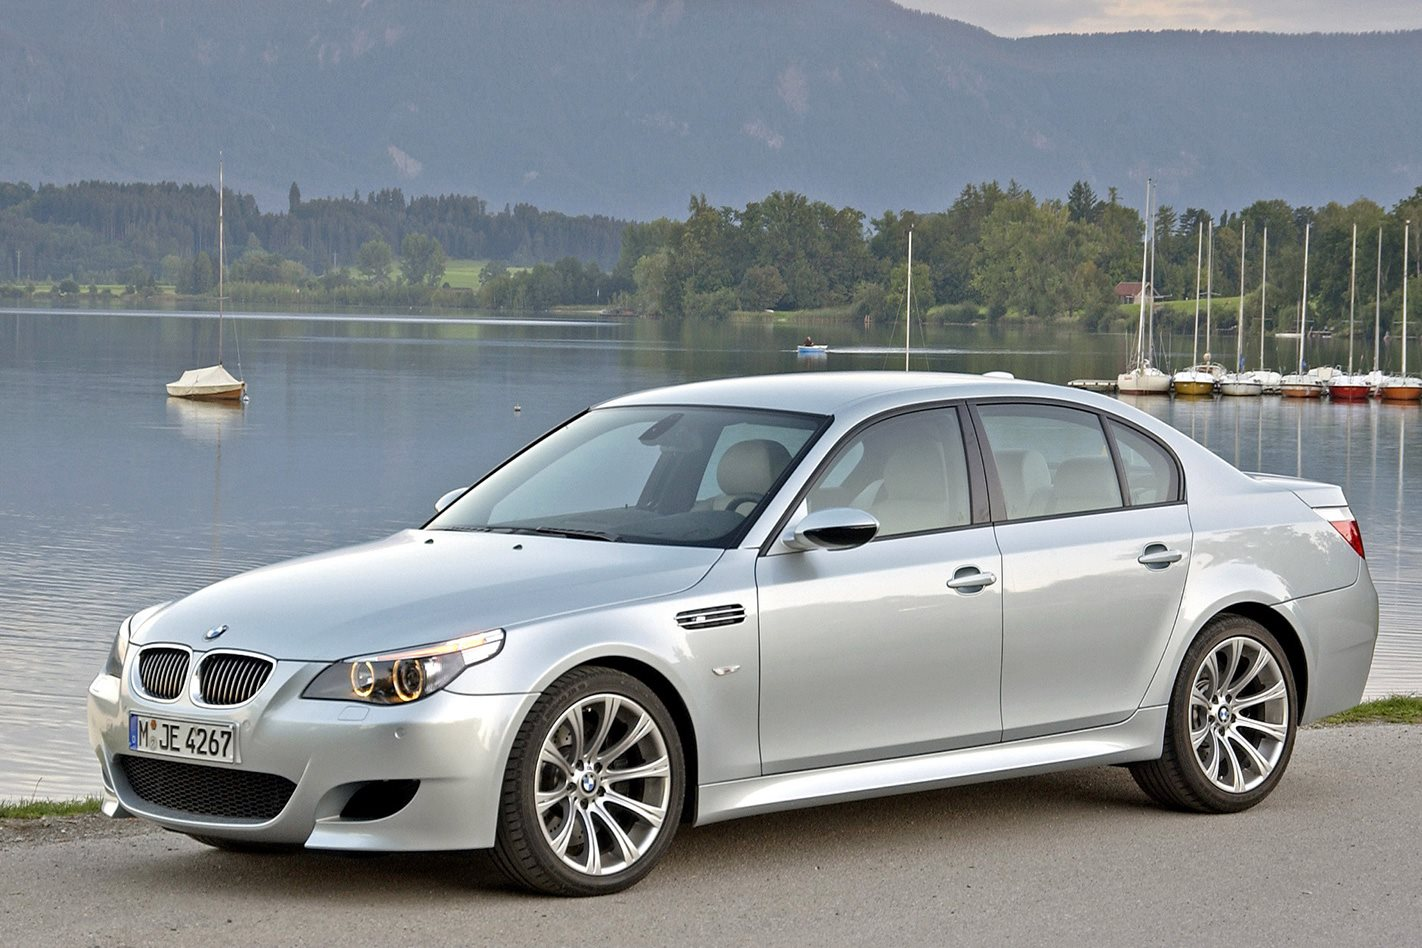 2005 e60 bmw m5 first drive classic motor. Black Bedroom Furniture Sets. Home Design Ideas